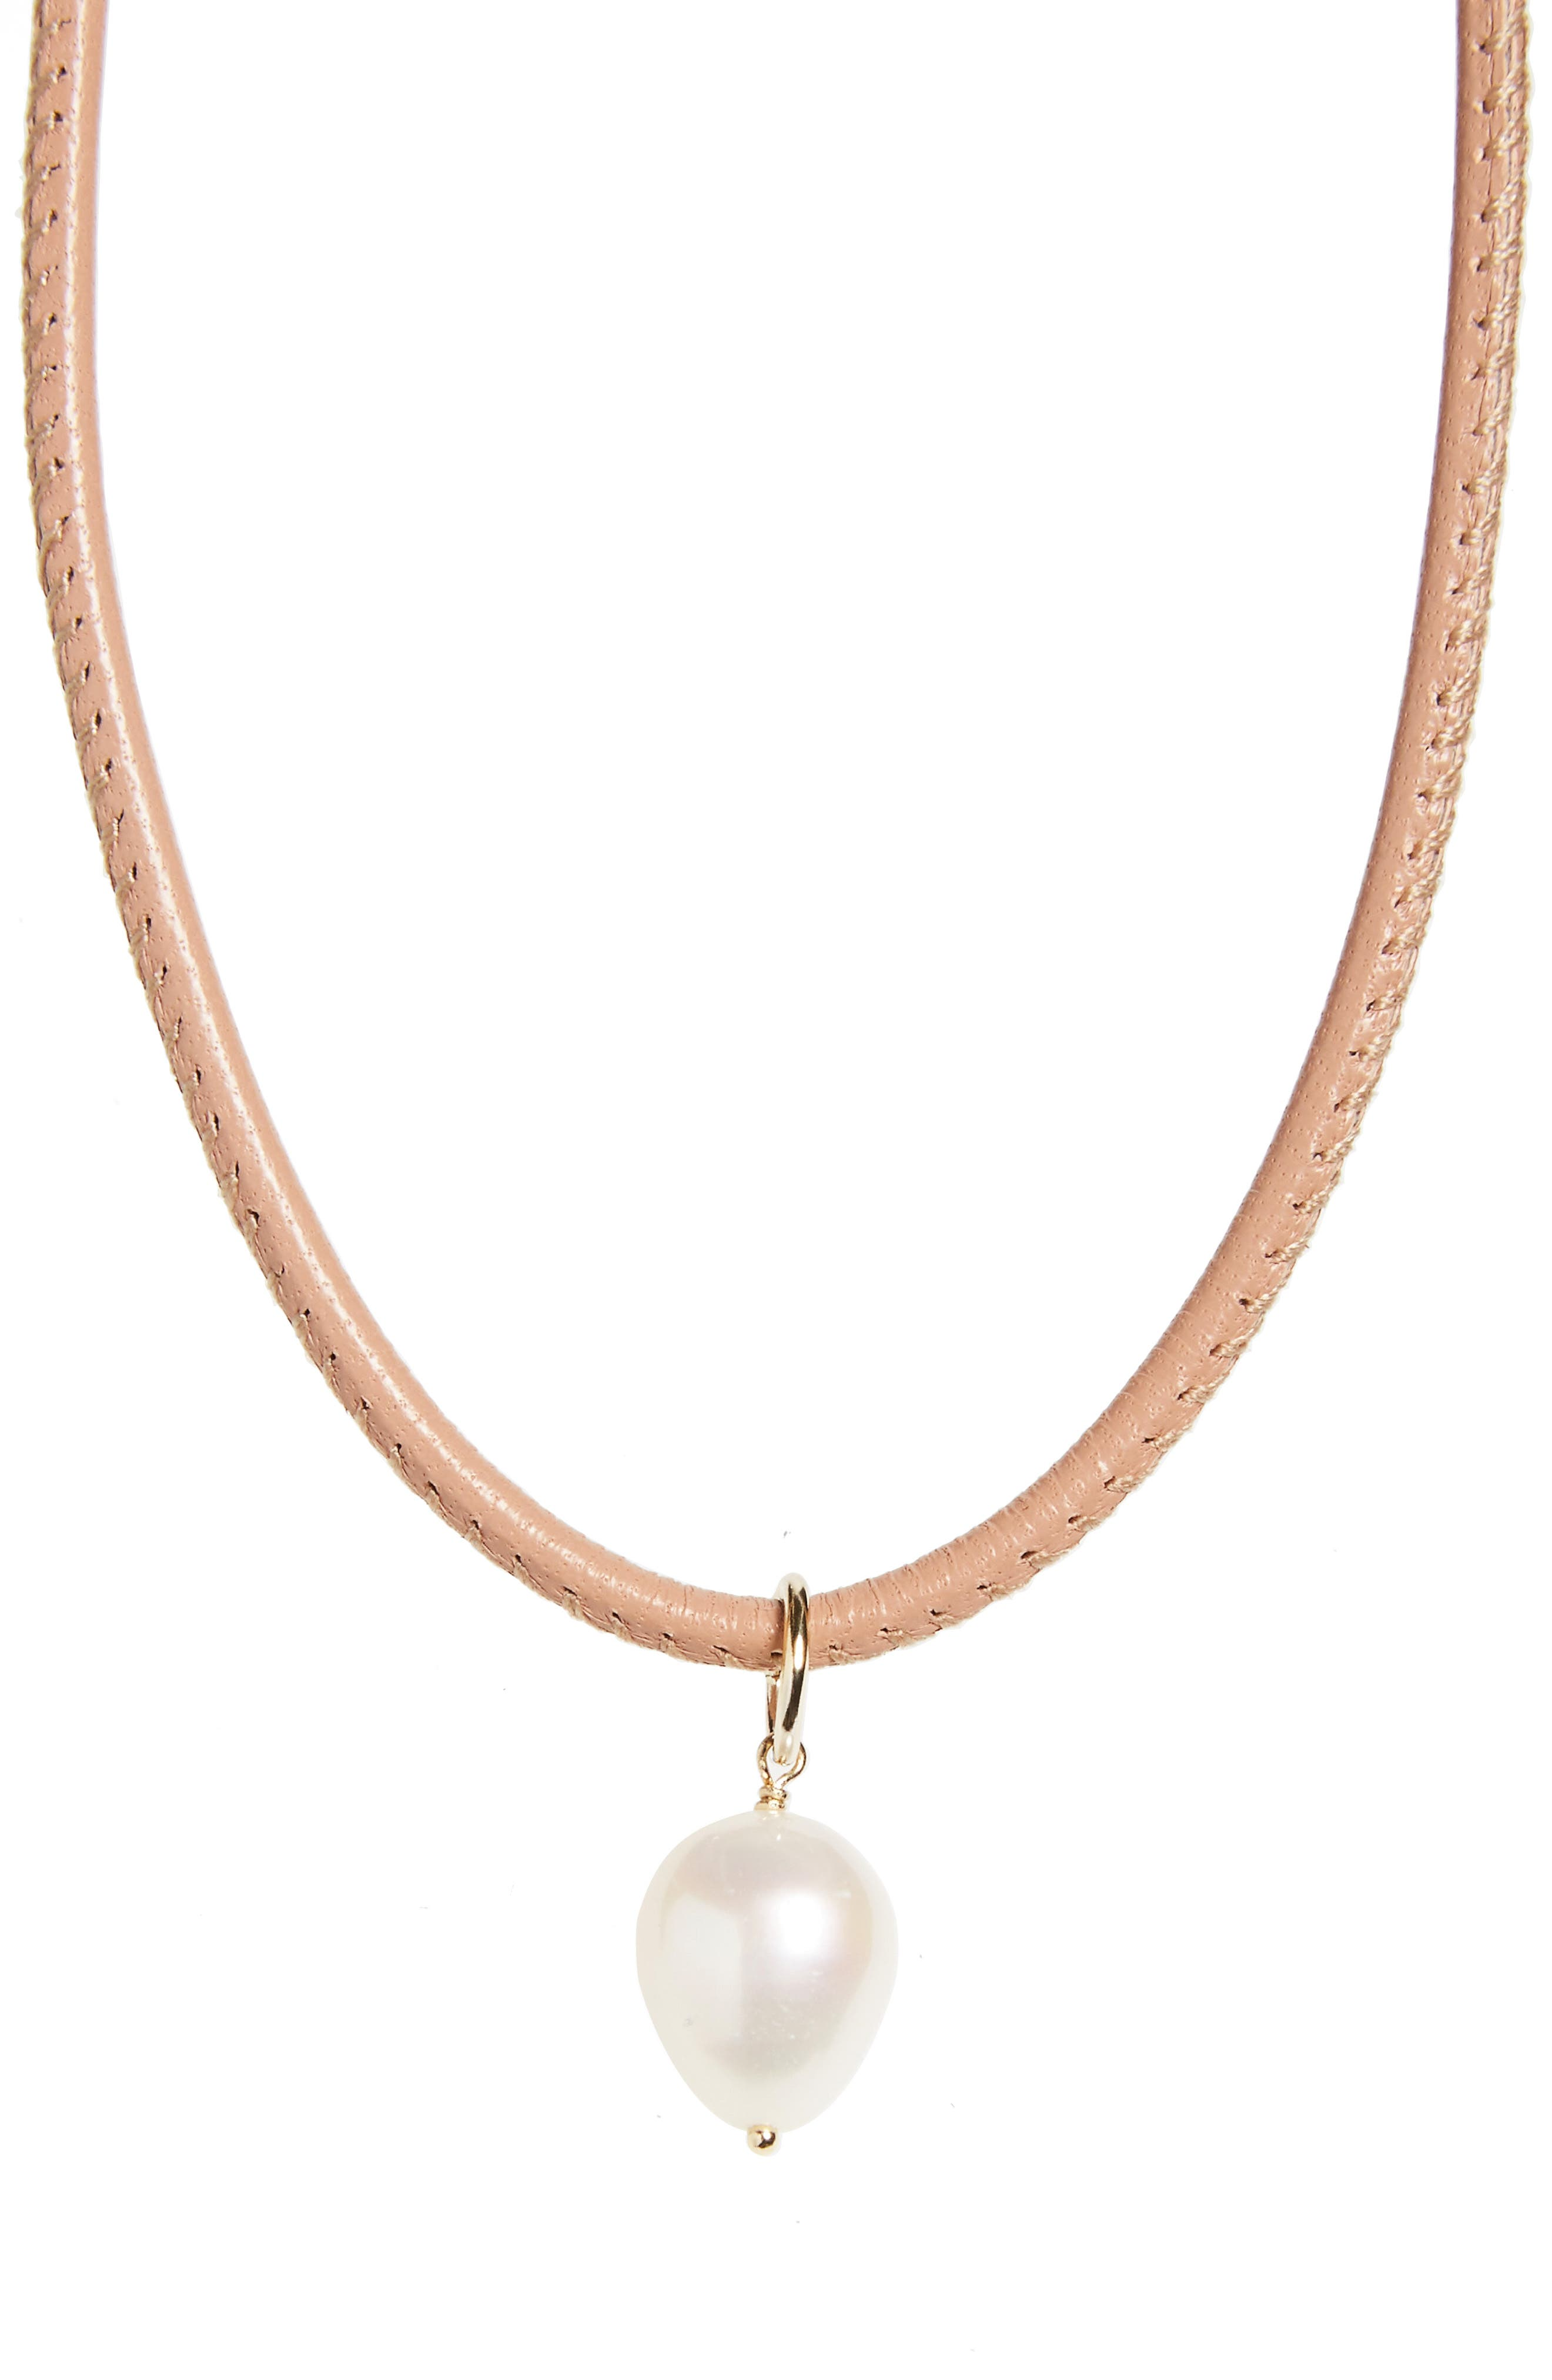 Leather & Pearl Choker,                             Alternate thumbnail 2, color,                             Neutral Leather/ White Pearl